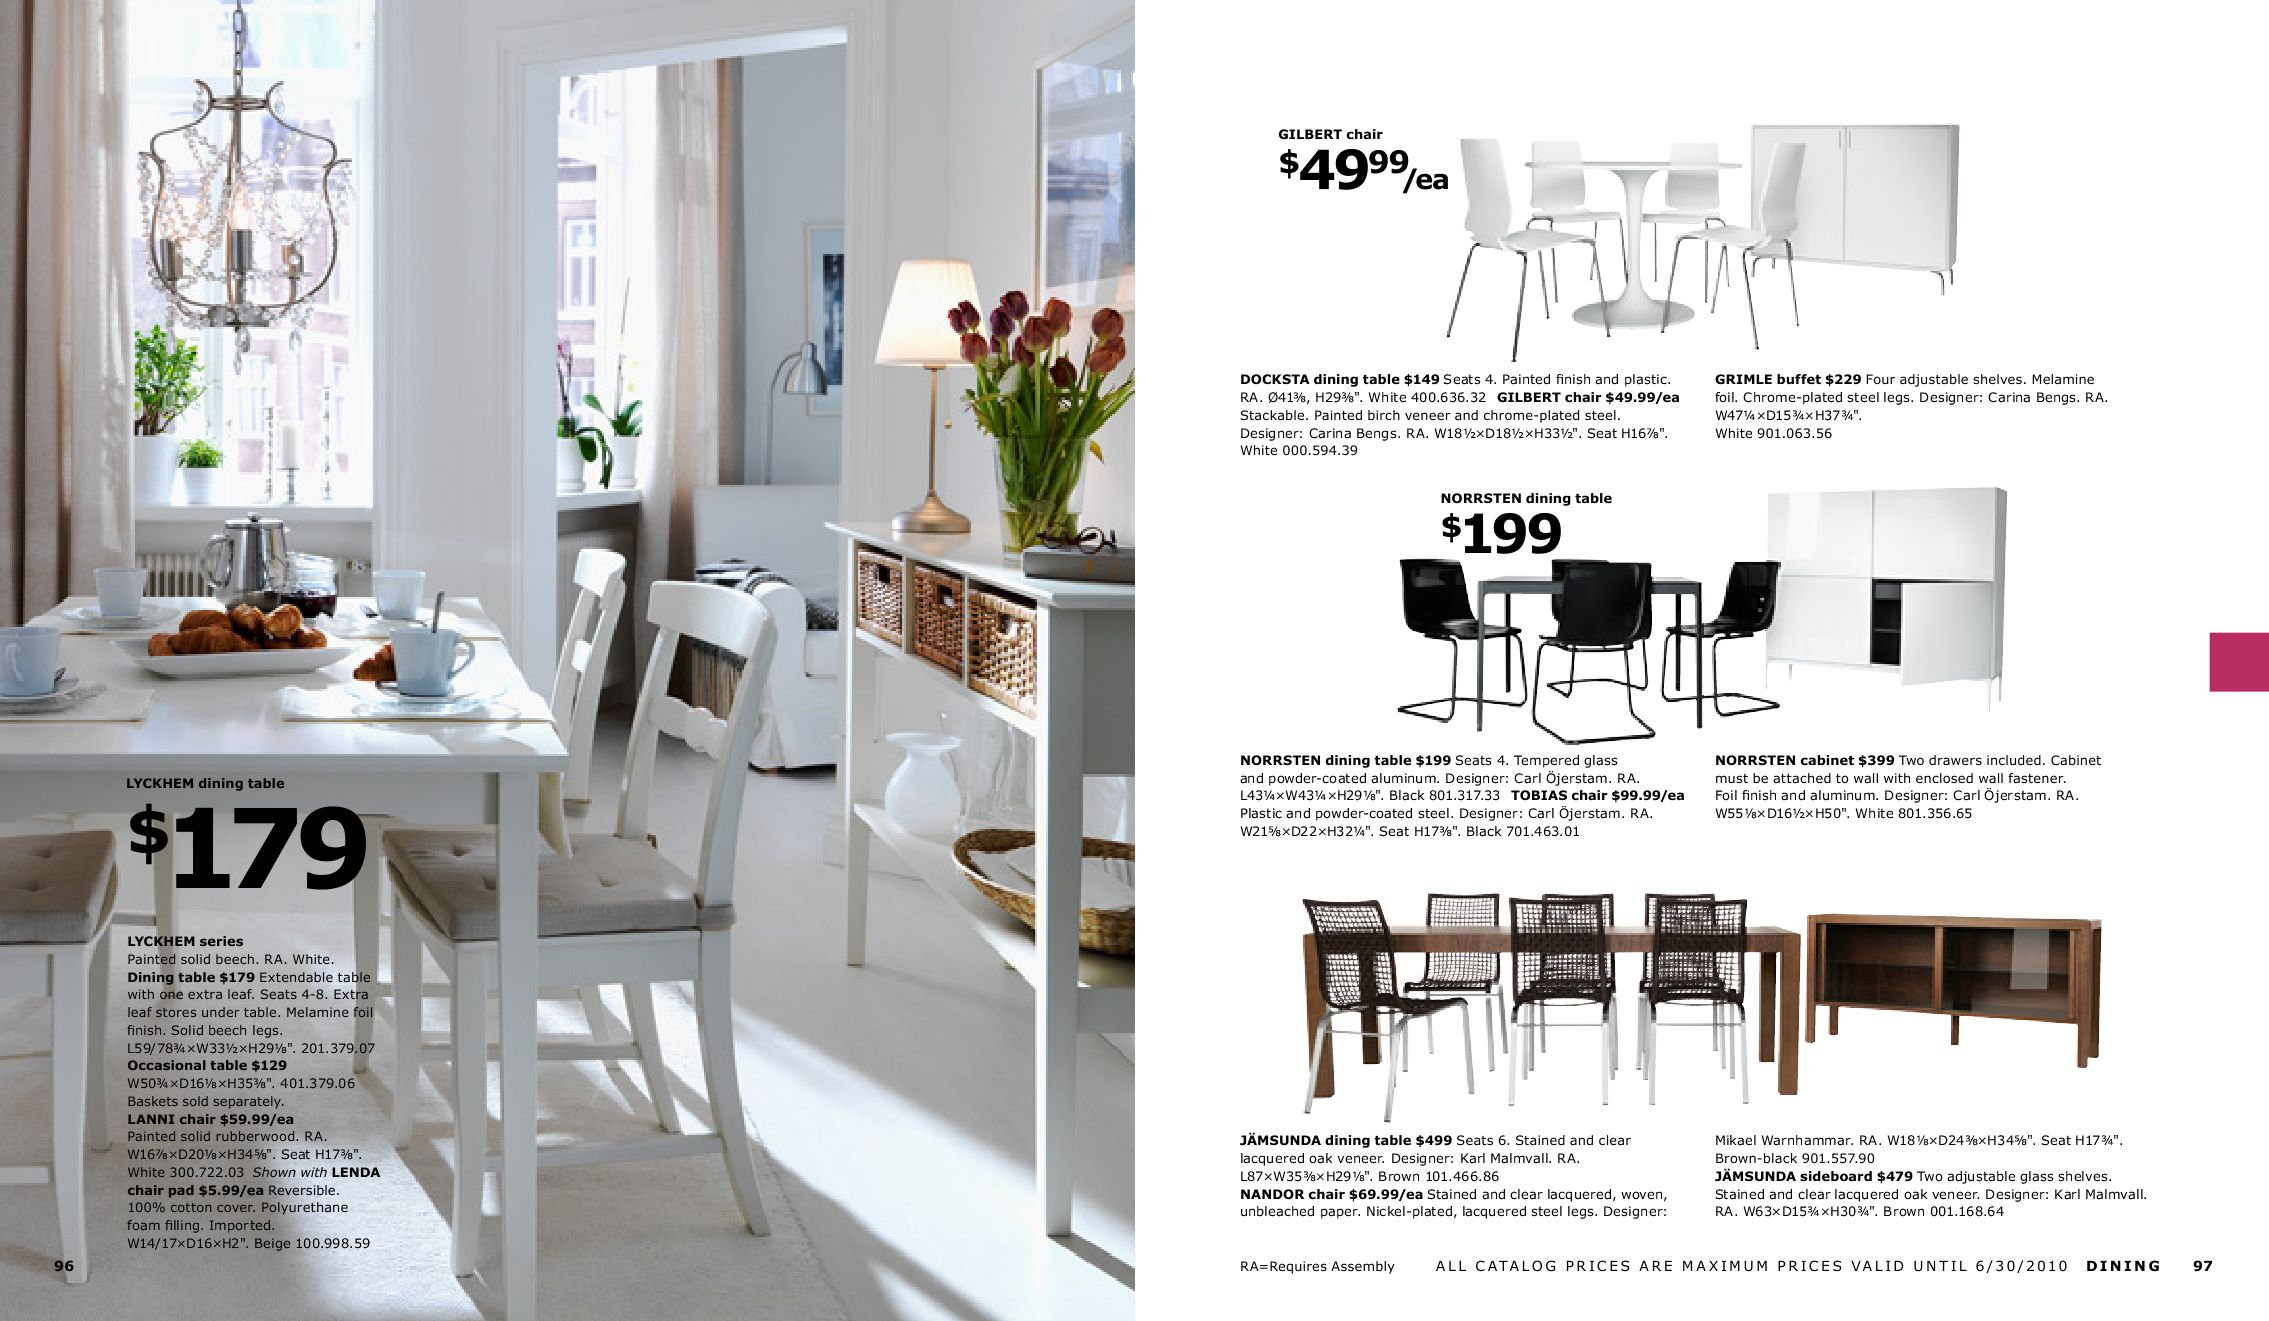 Extendable Dining Table Ikea Ikea Catalog 2010 By Muhammad Mansour - Issuu